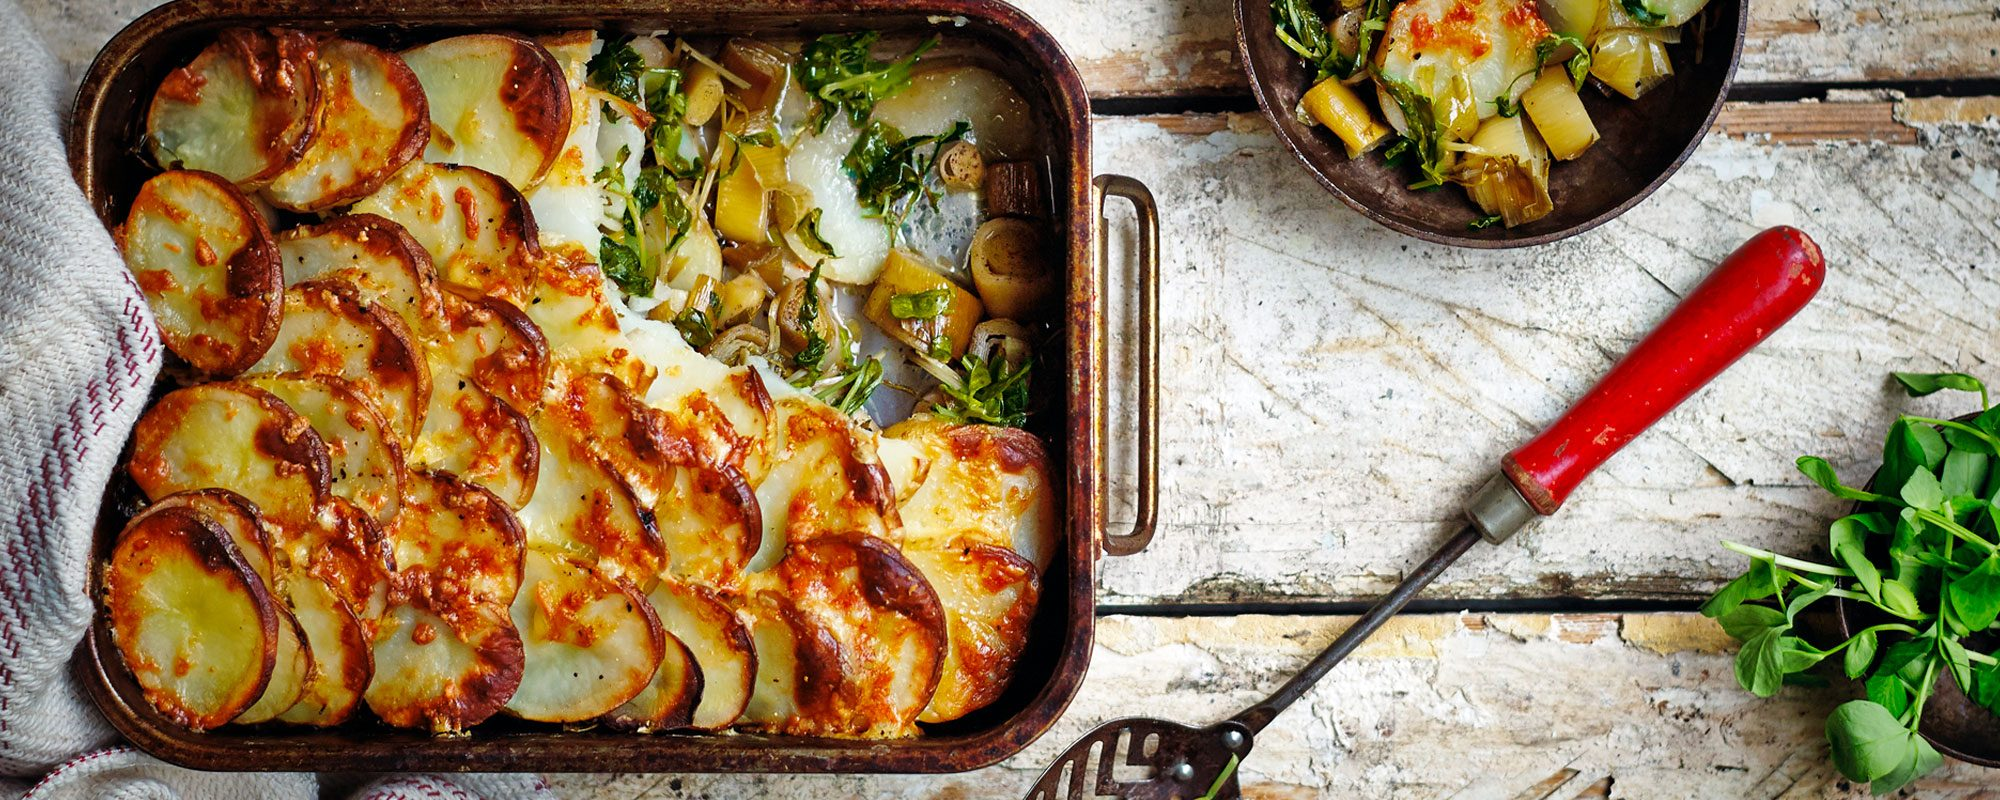 Pea Shoots, Leek and Potato Bake